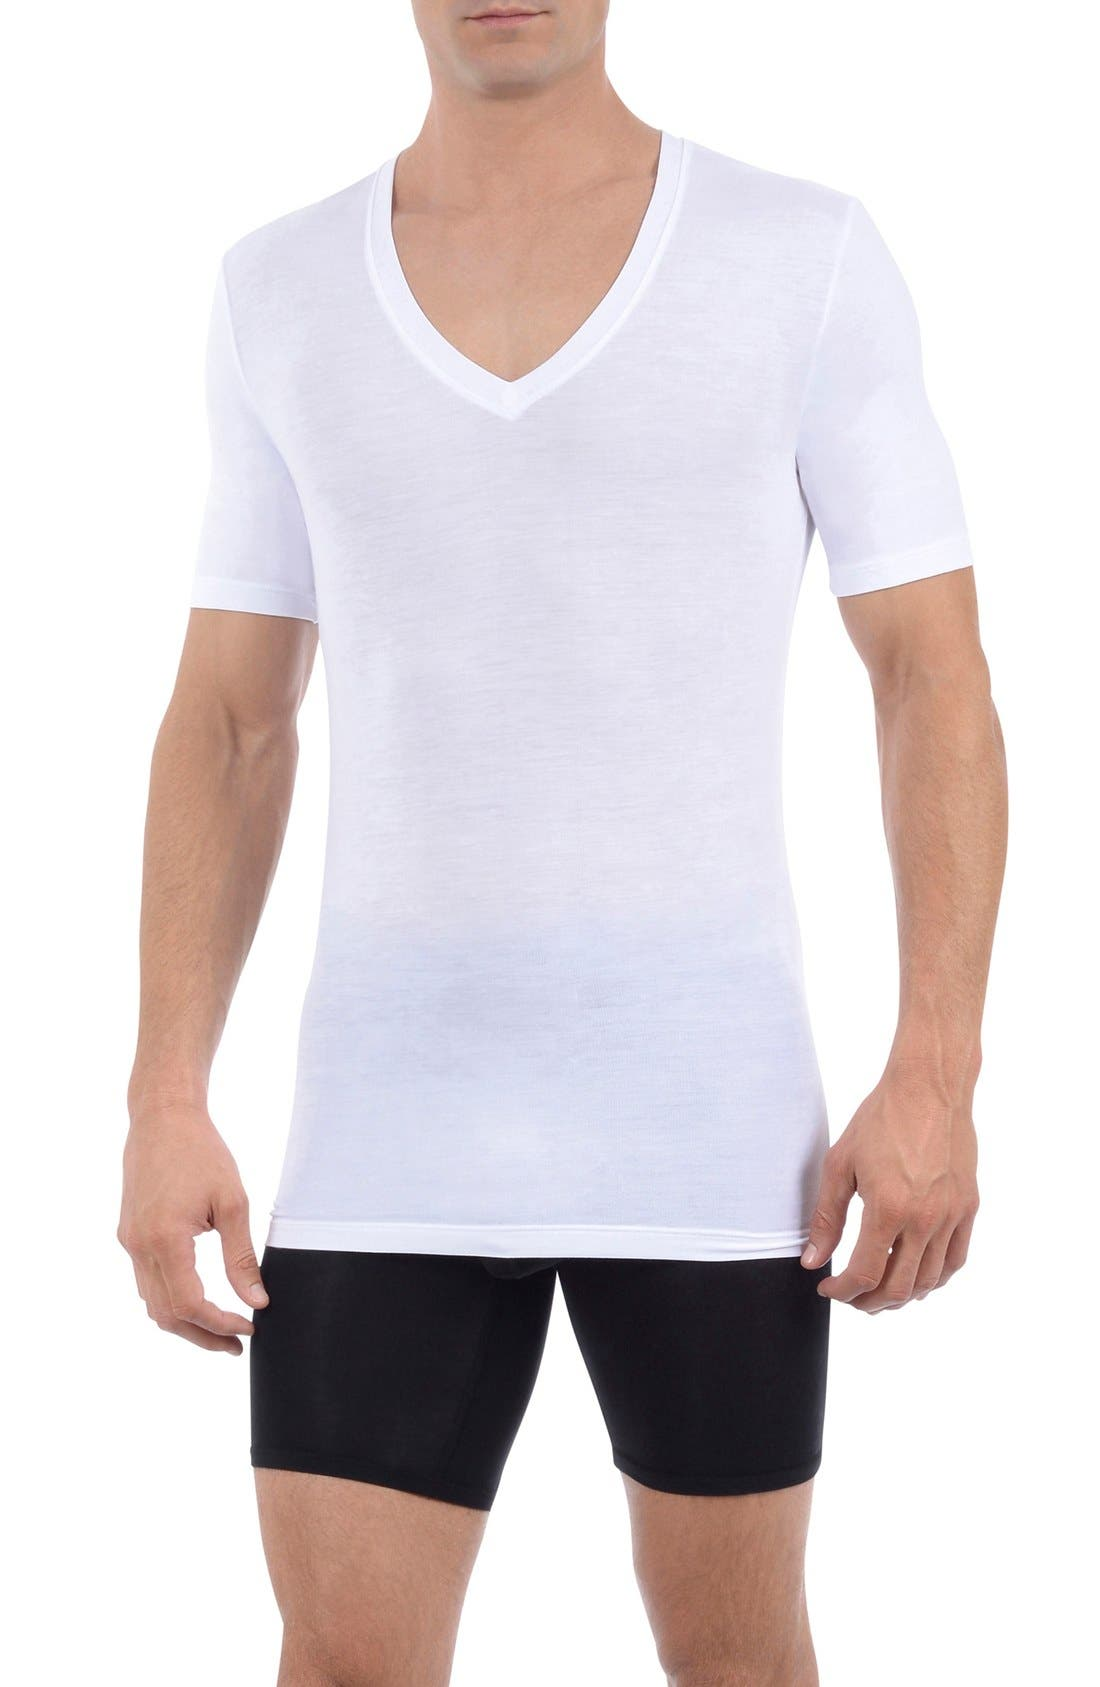 Second Skin Micromodal Deep V-Neck Undershirt,                         Main,                         color, White